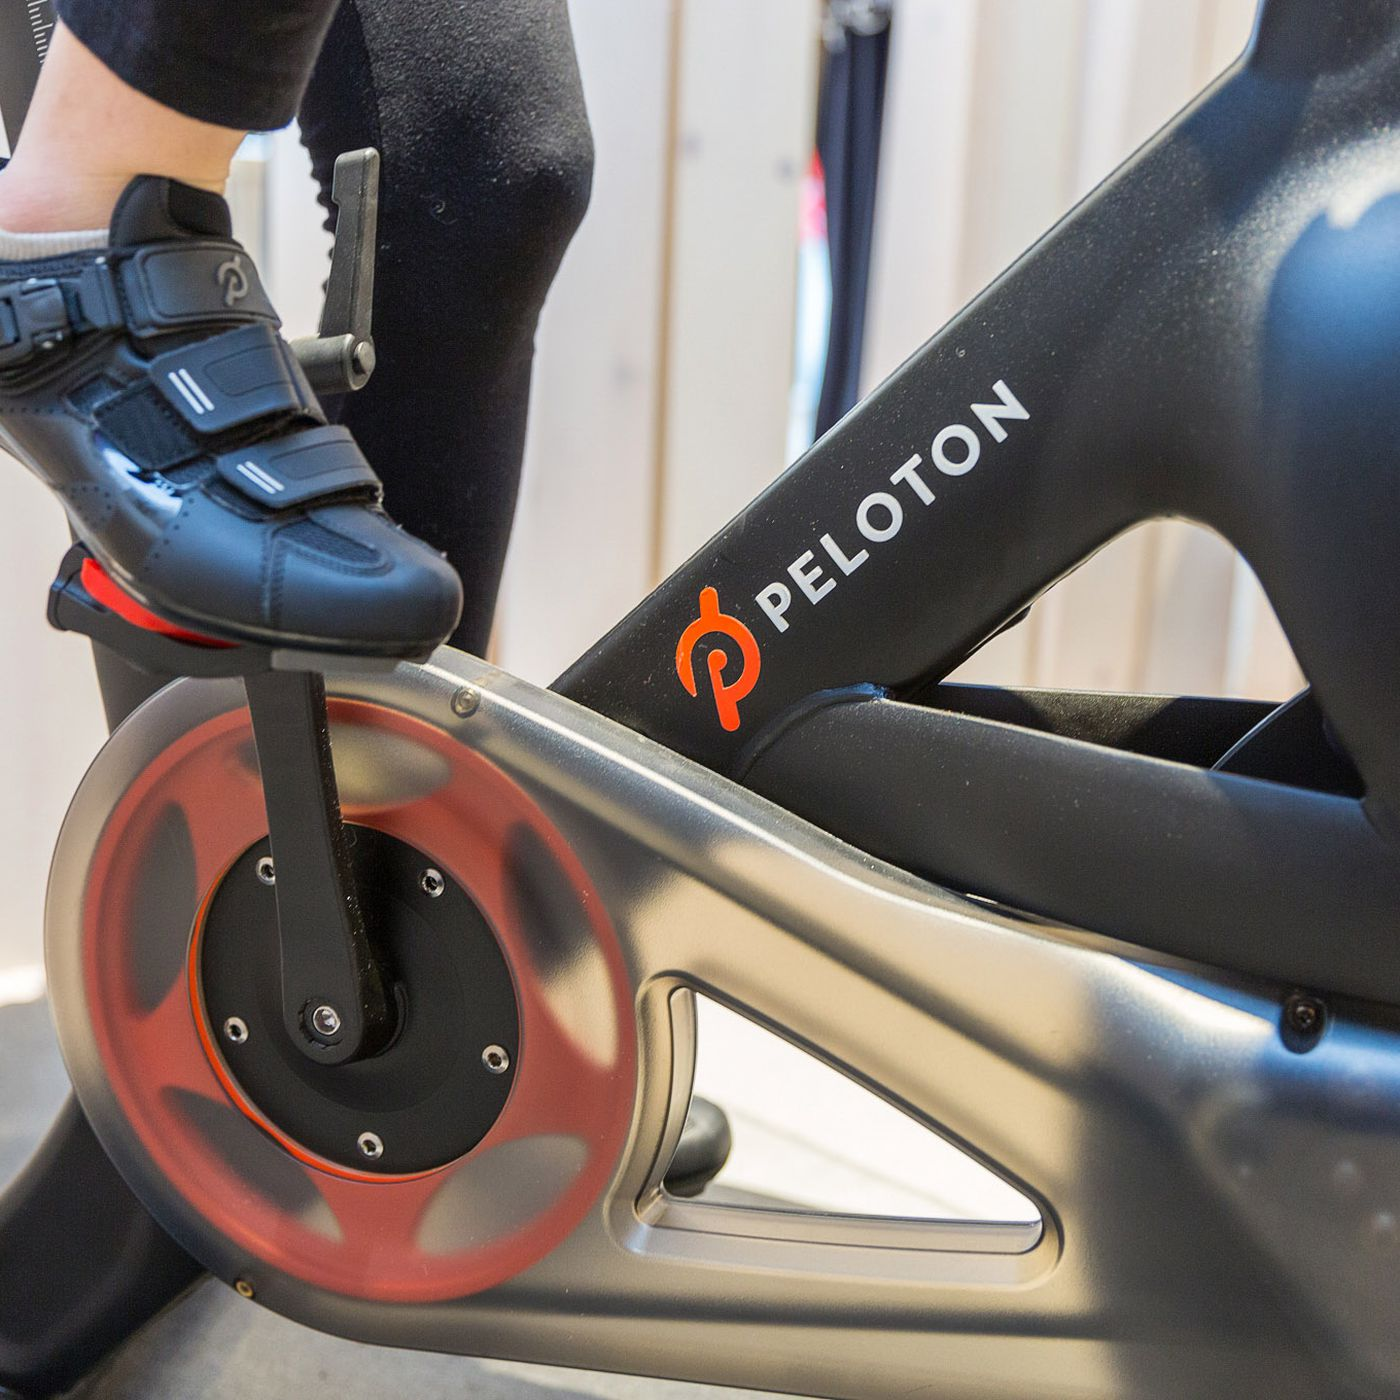 My Two Month Ride With Peloton The Cultish Internet Connected Fitness Bike The Verge